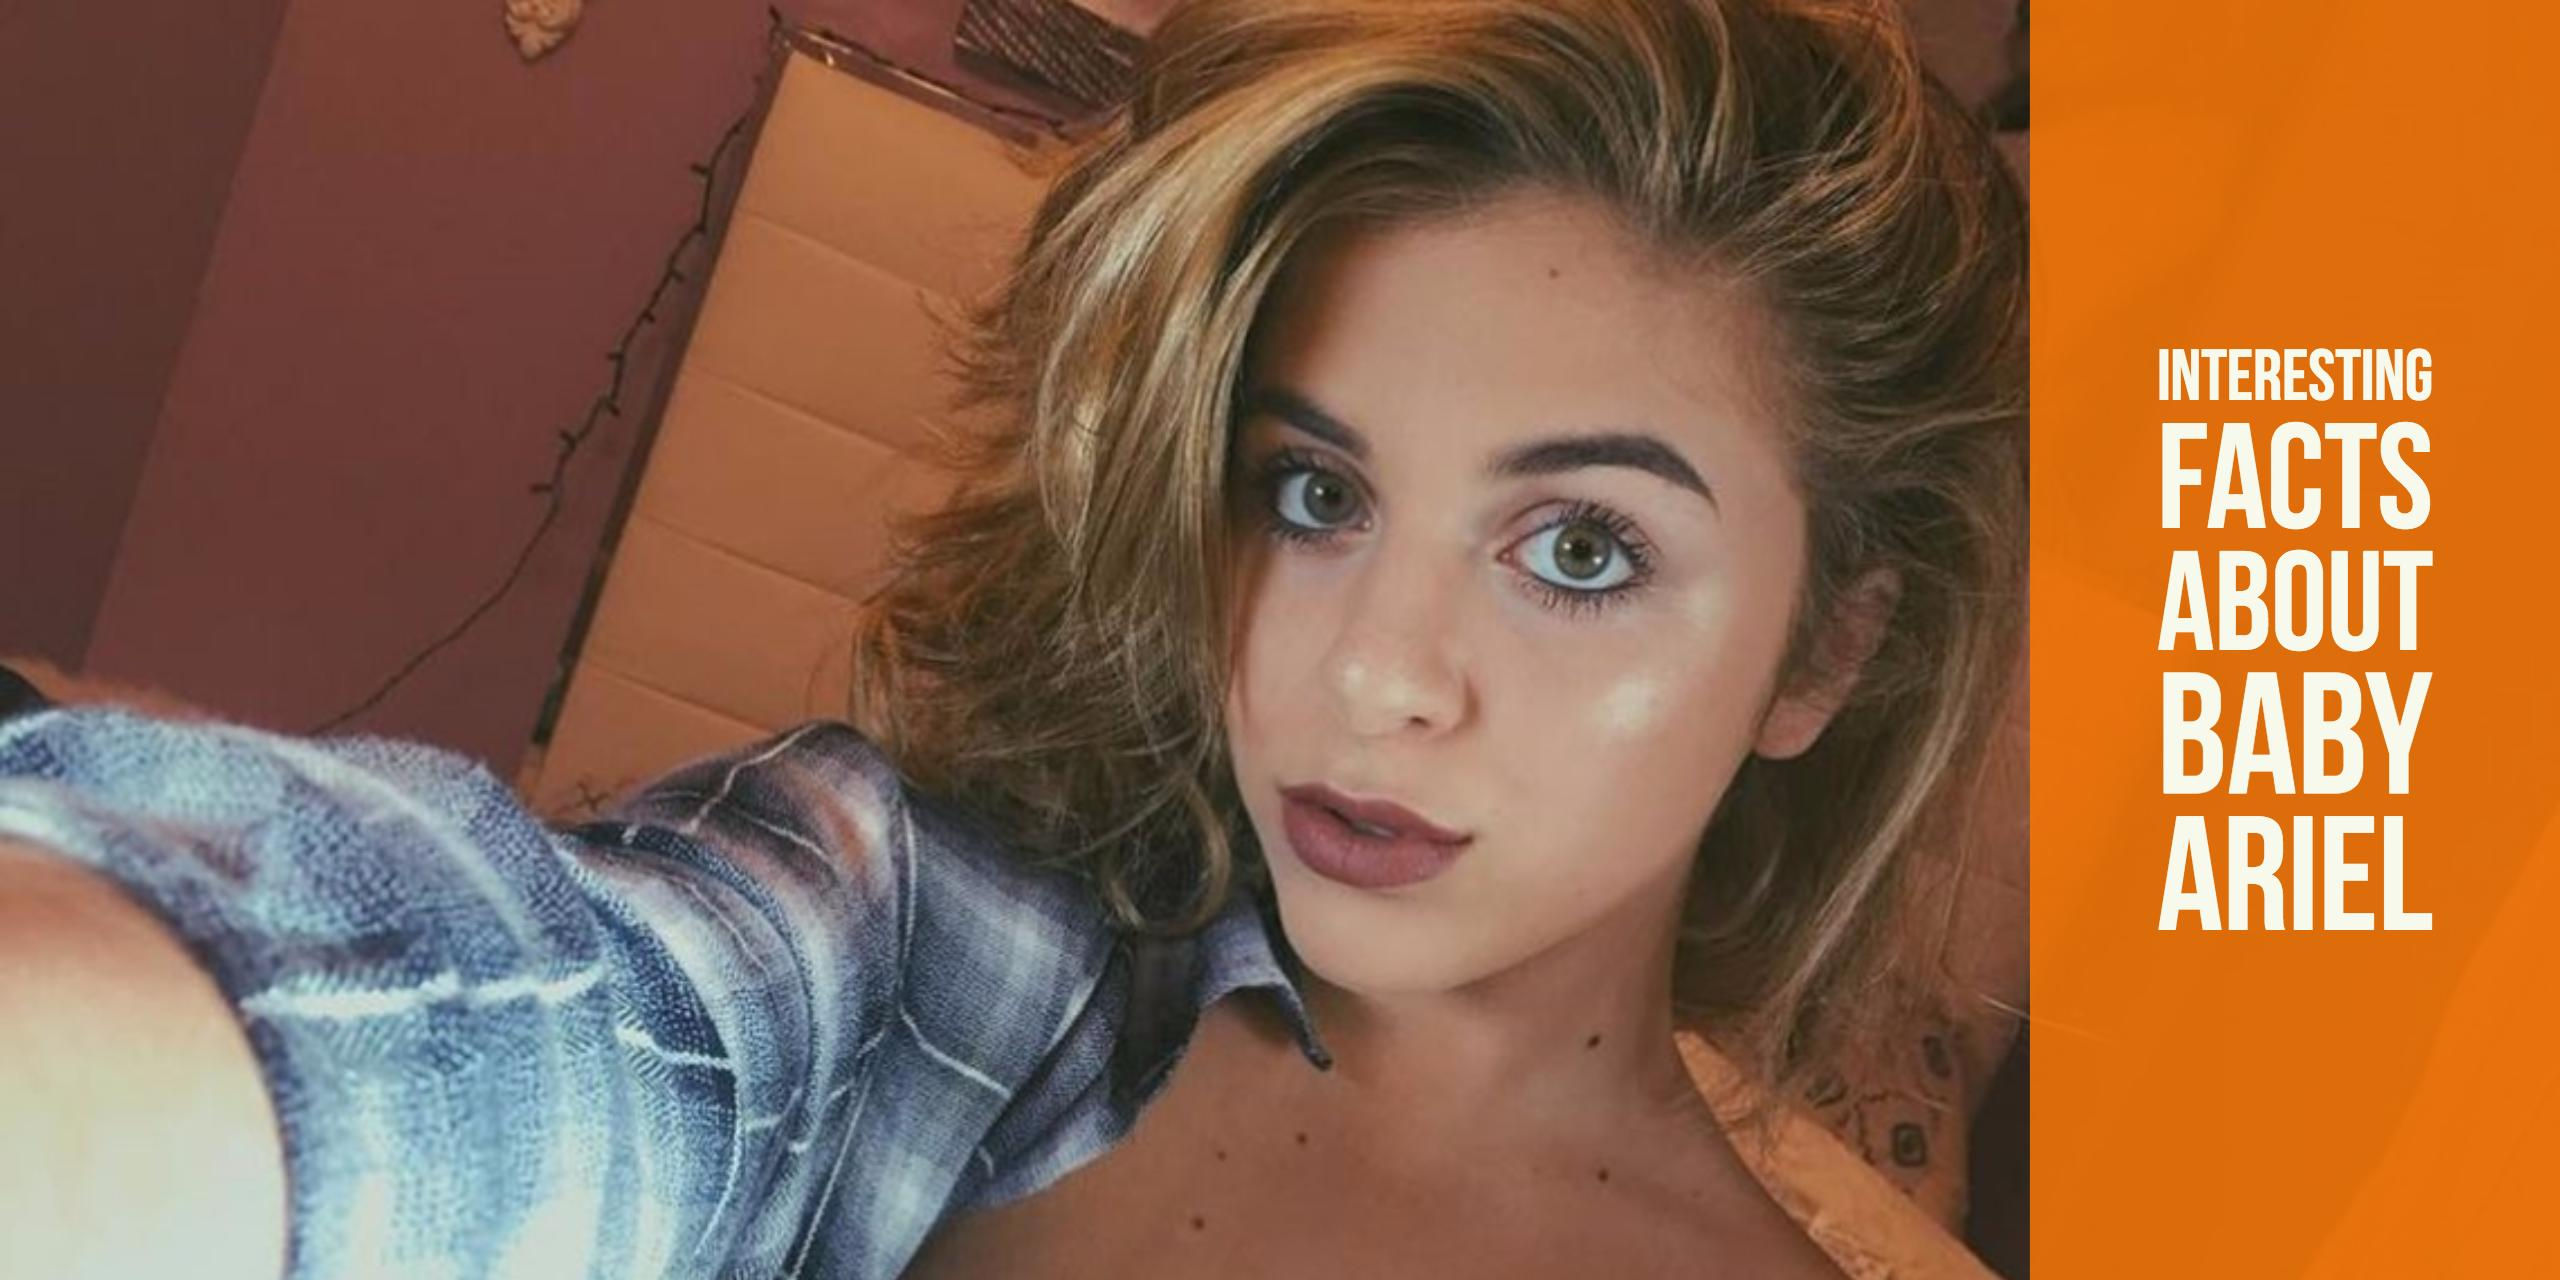 Interesting Facts About Baby Ariel